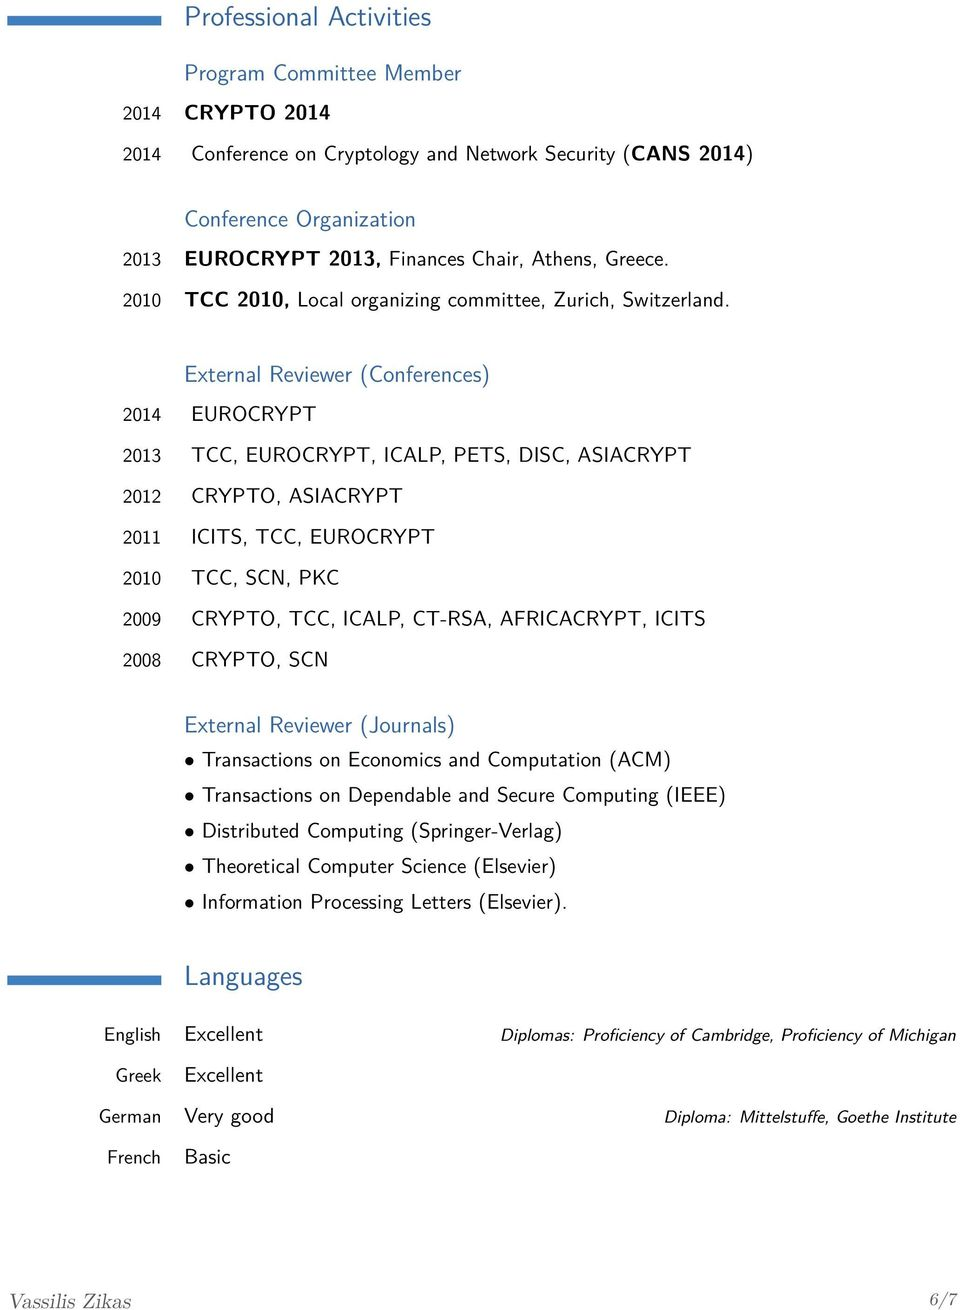 External Reviewer (Conferences) 2014 EUROCRYPT 2013 TCC, EUROCRYPT, ICALP, PETS, DISC, ASIACRYPT 2012 CRYPTO, ASIACRYPT 2011 ICITS, TCC, EUROCRYPT 2010 TCC, SCN, PKC 2009 CRYPTO, TCC, ICALP, CT-RSA,